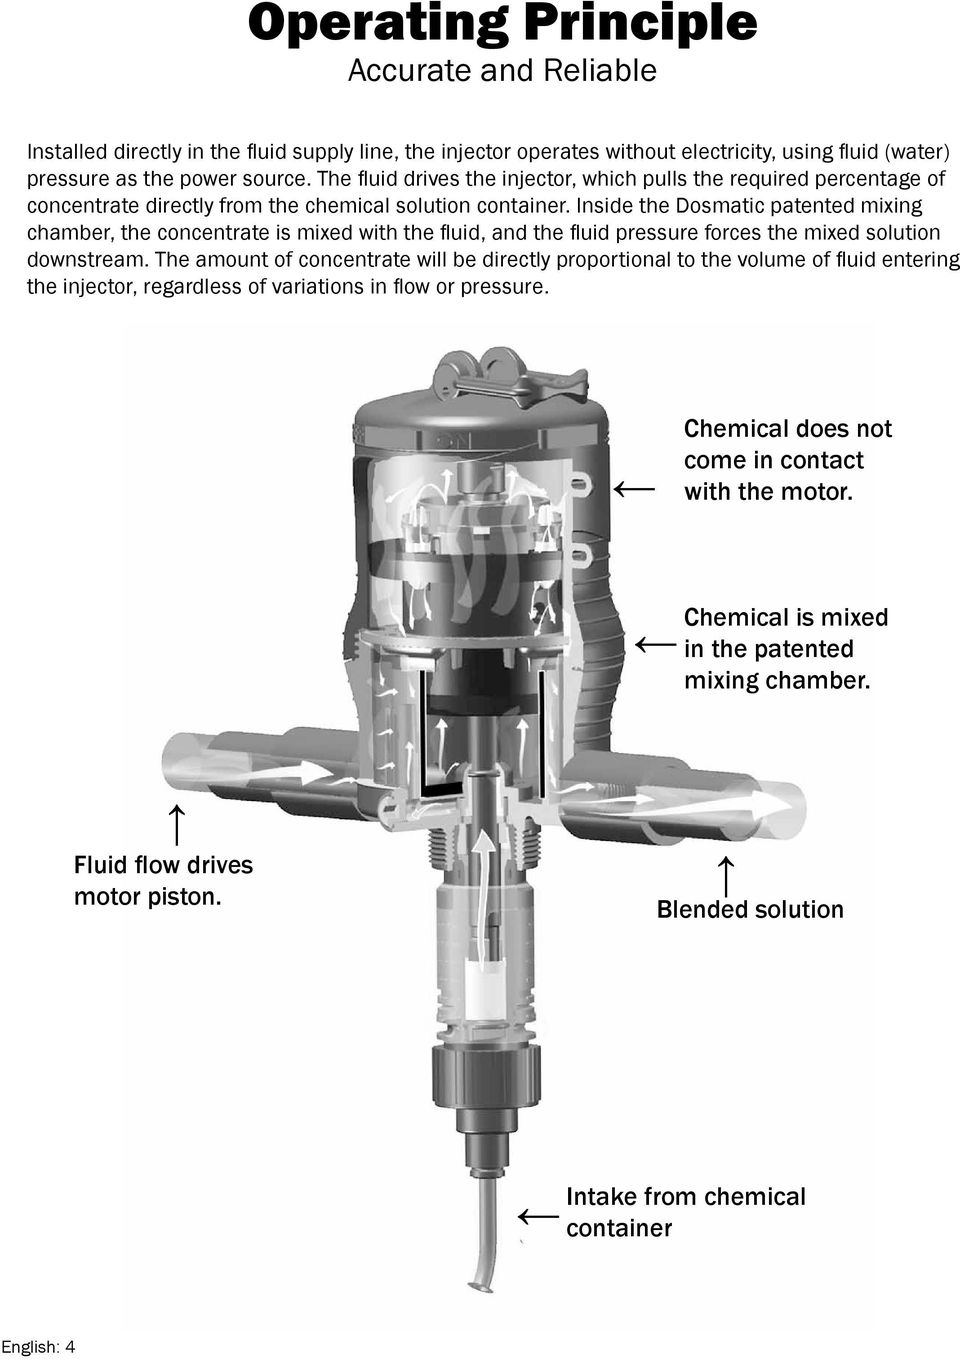 Inside the Dosmatic patented mixing chamber, the concentrate is mixed with the fluid, and the fluid pressure forces the mixed solution downstream.